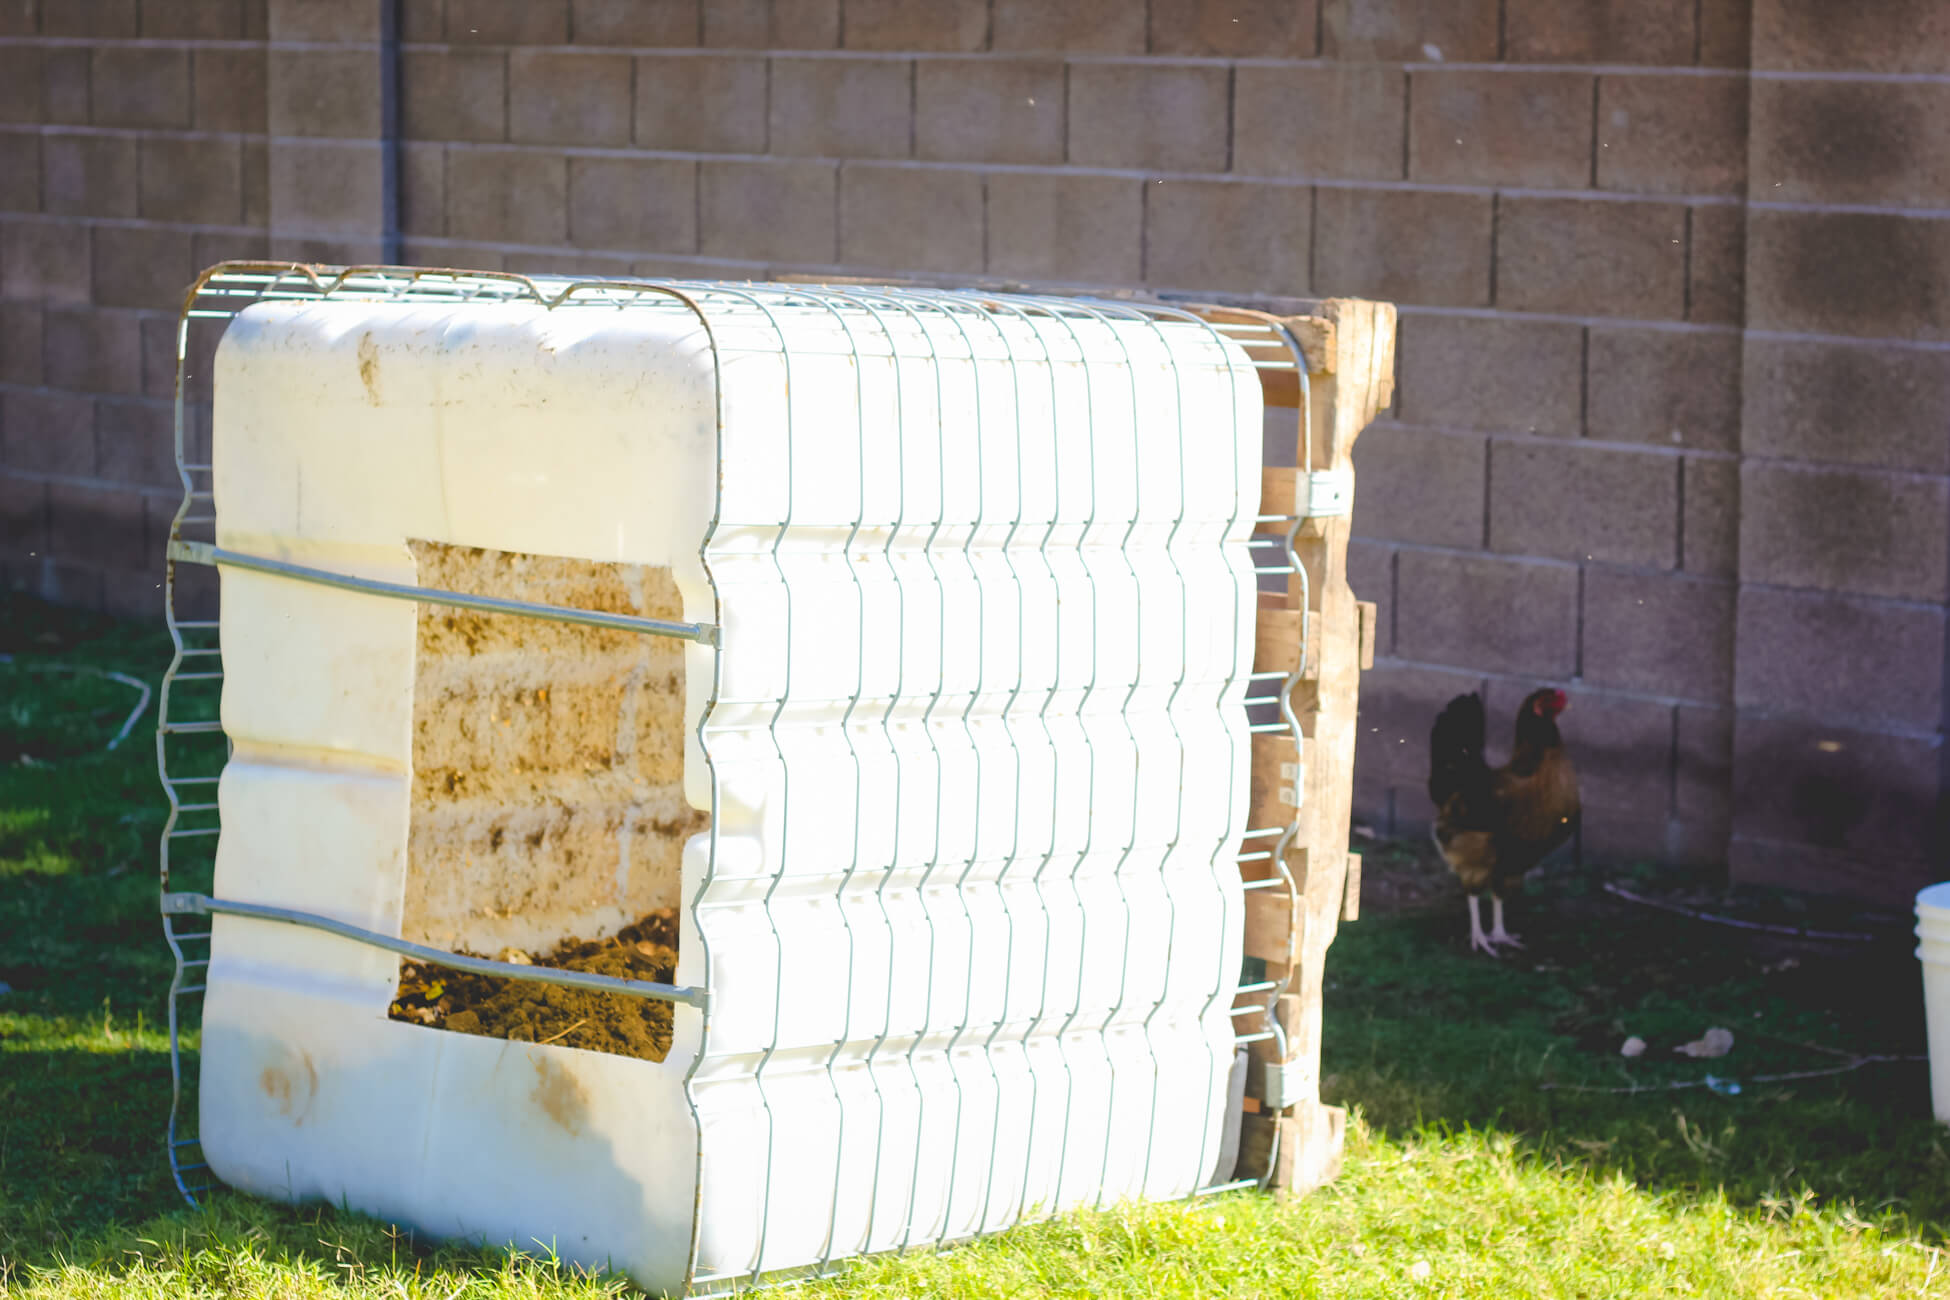 Water tank compost bin with chicken looking on